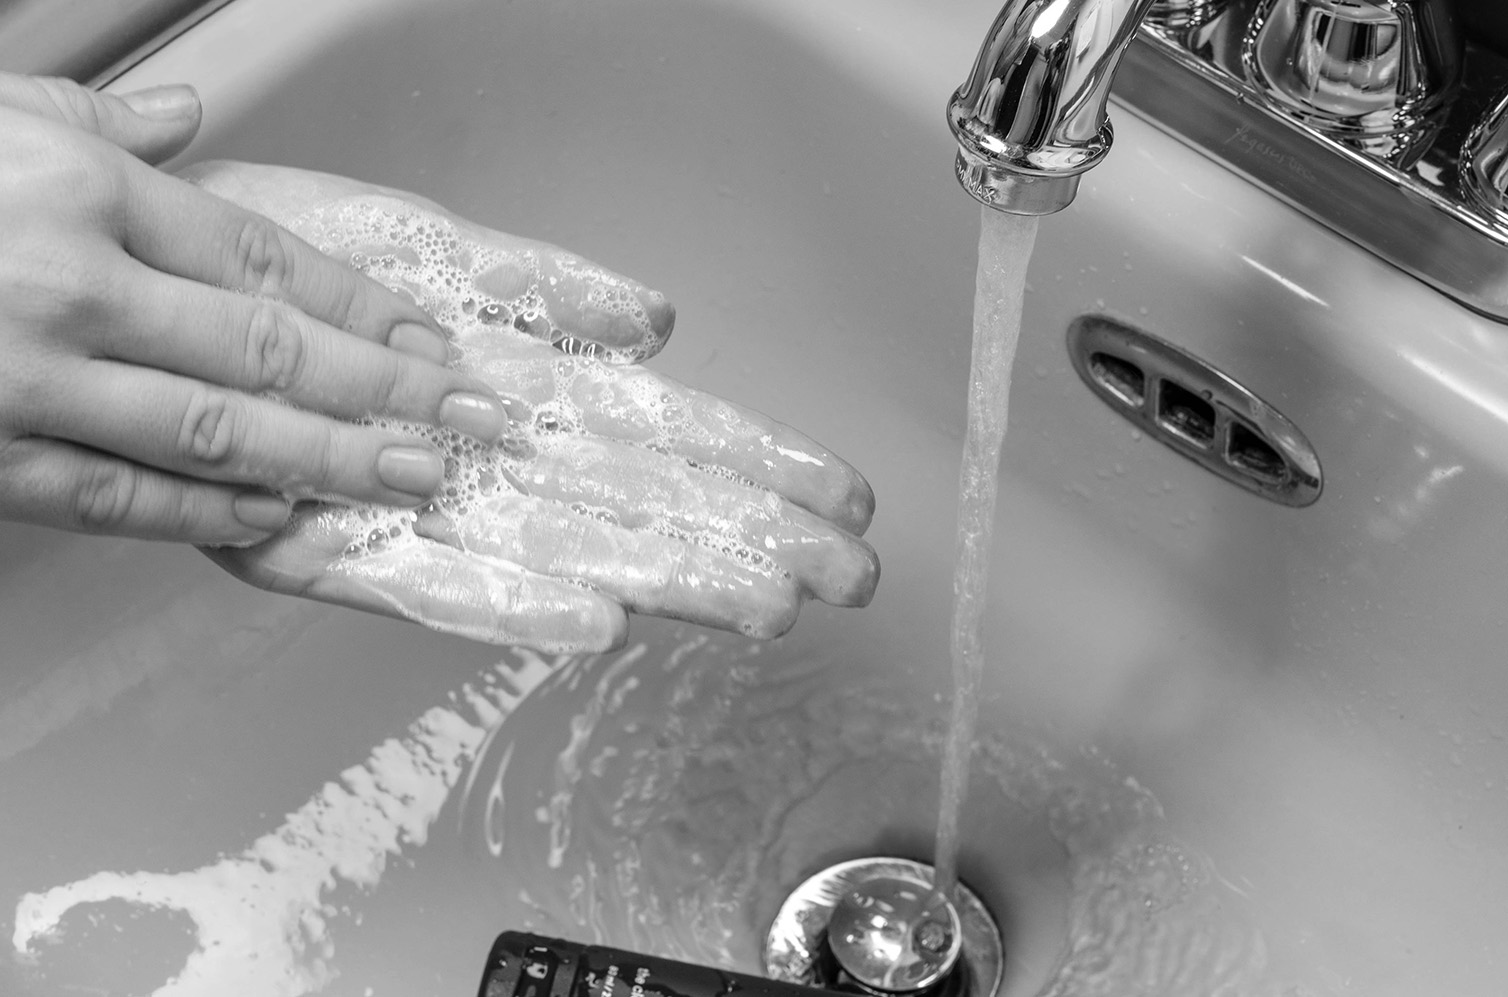 washing hands with cleanser